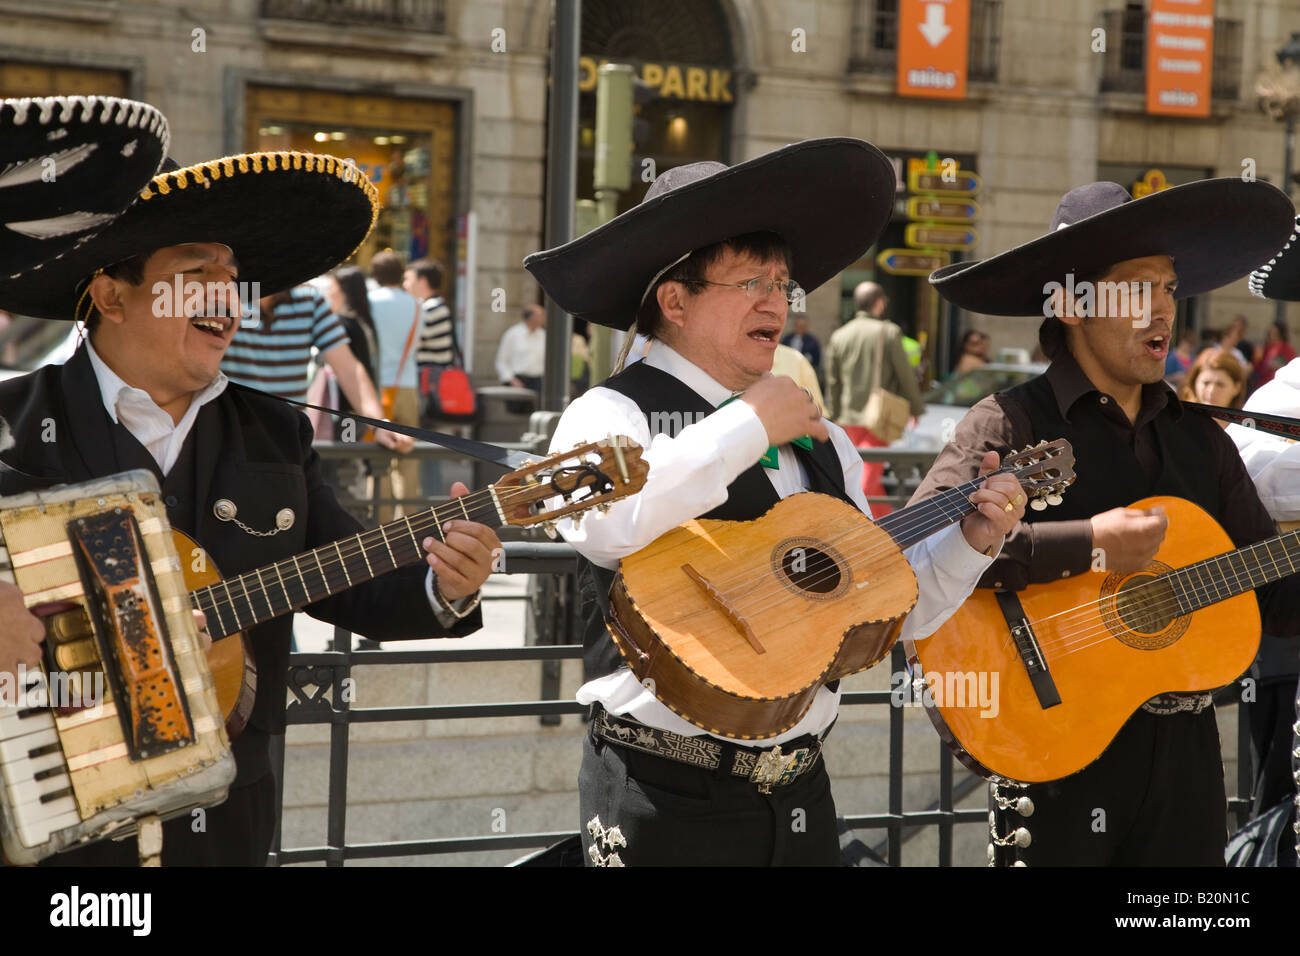 SPAIN Madrid Members of Mariachi band singing and playing guitars in